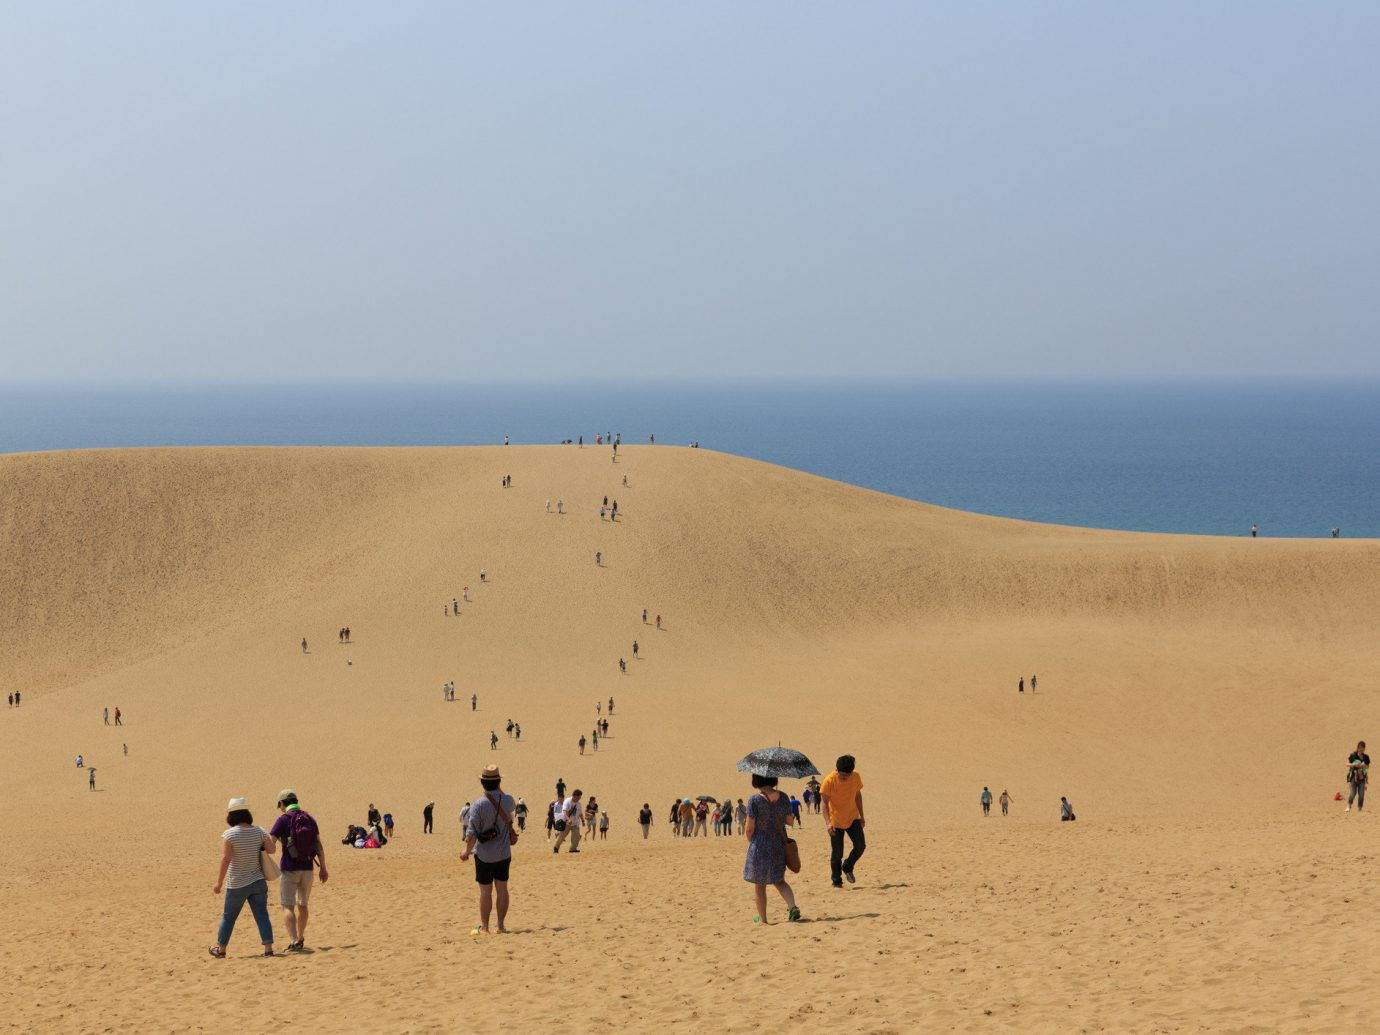 Trip Ideas sky outdoor Nature habitat Beach natural environment dune landform geographical feature erg people sand aeolian landform group sahara shore Sea landscape Desert wadi several